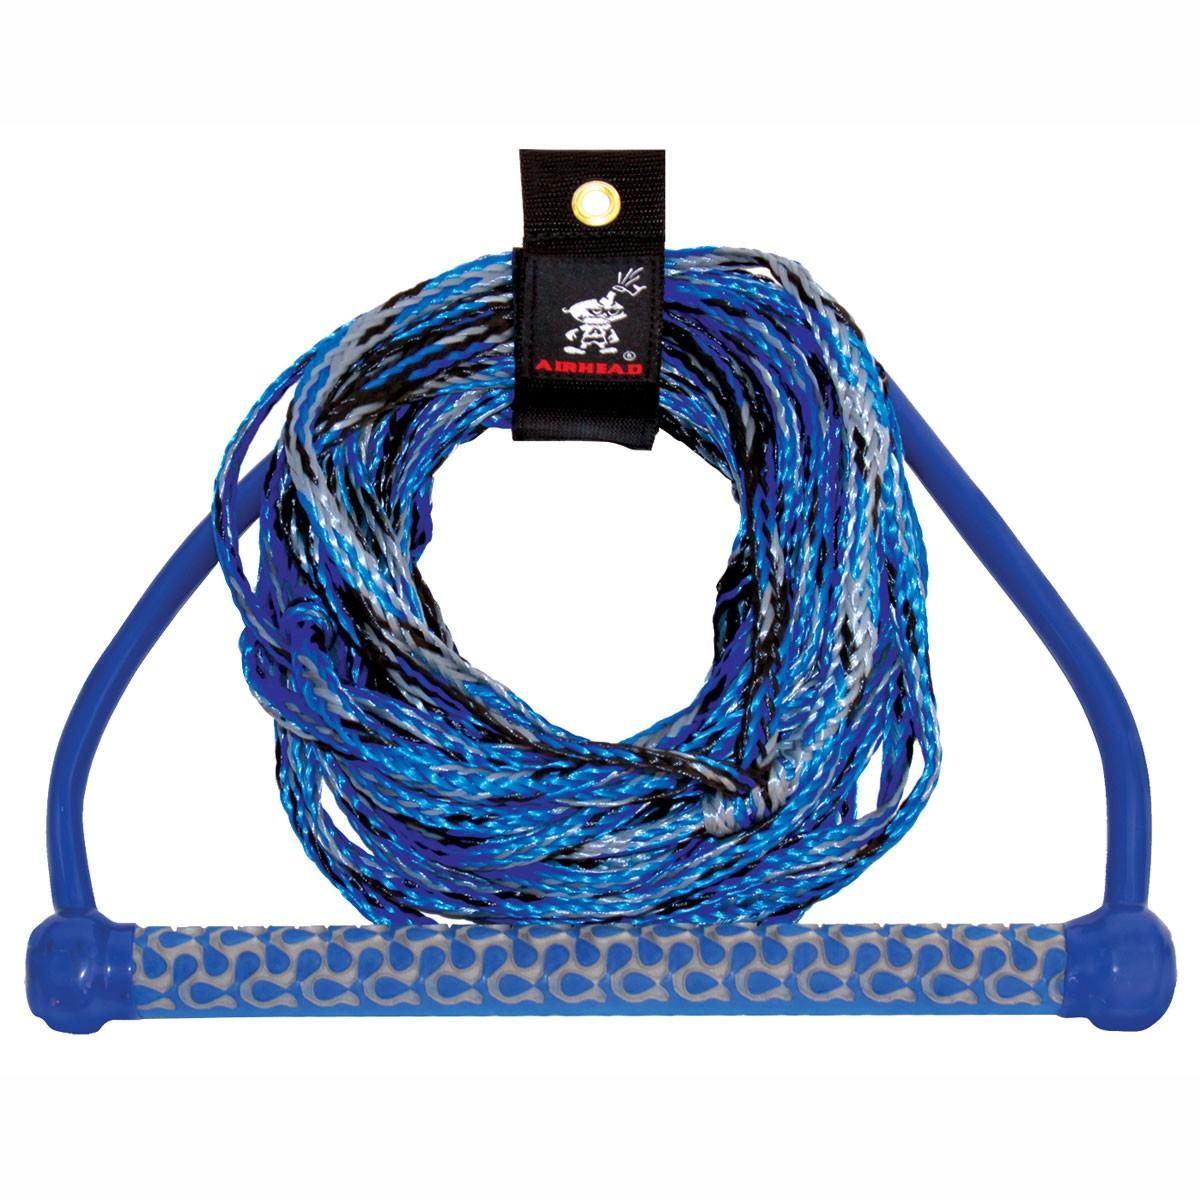 Airhead AHWR-3 Wakeboard Rope with EVA Grip Handle by Airhead